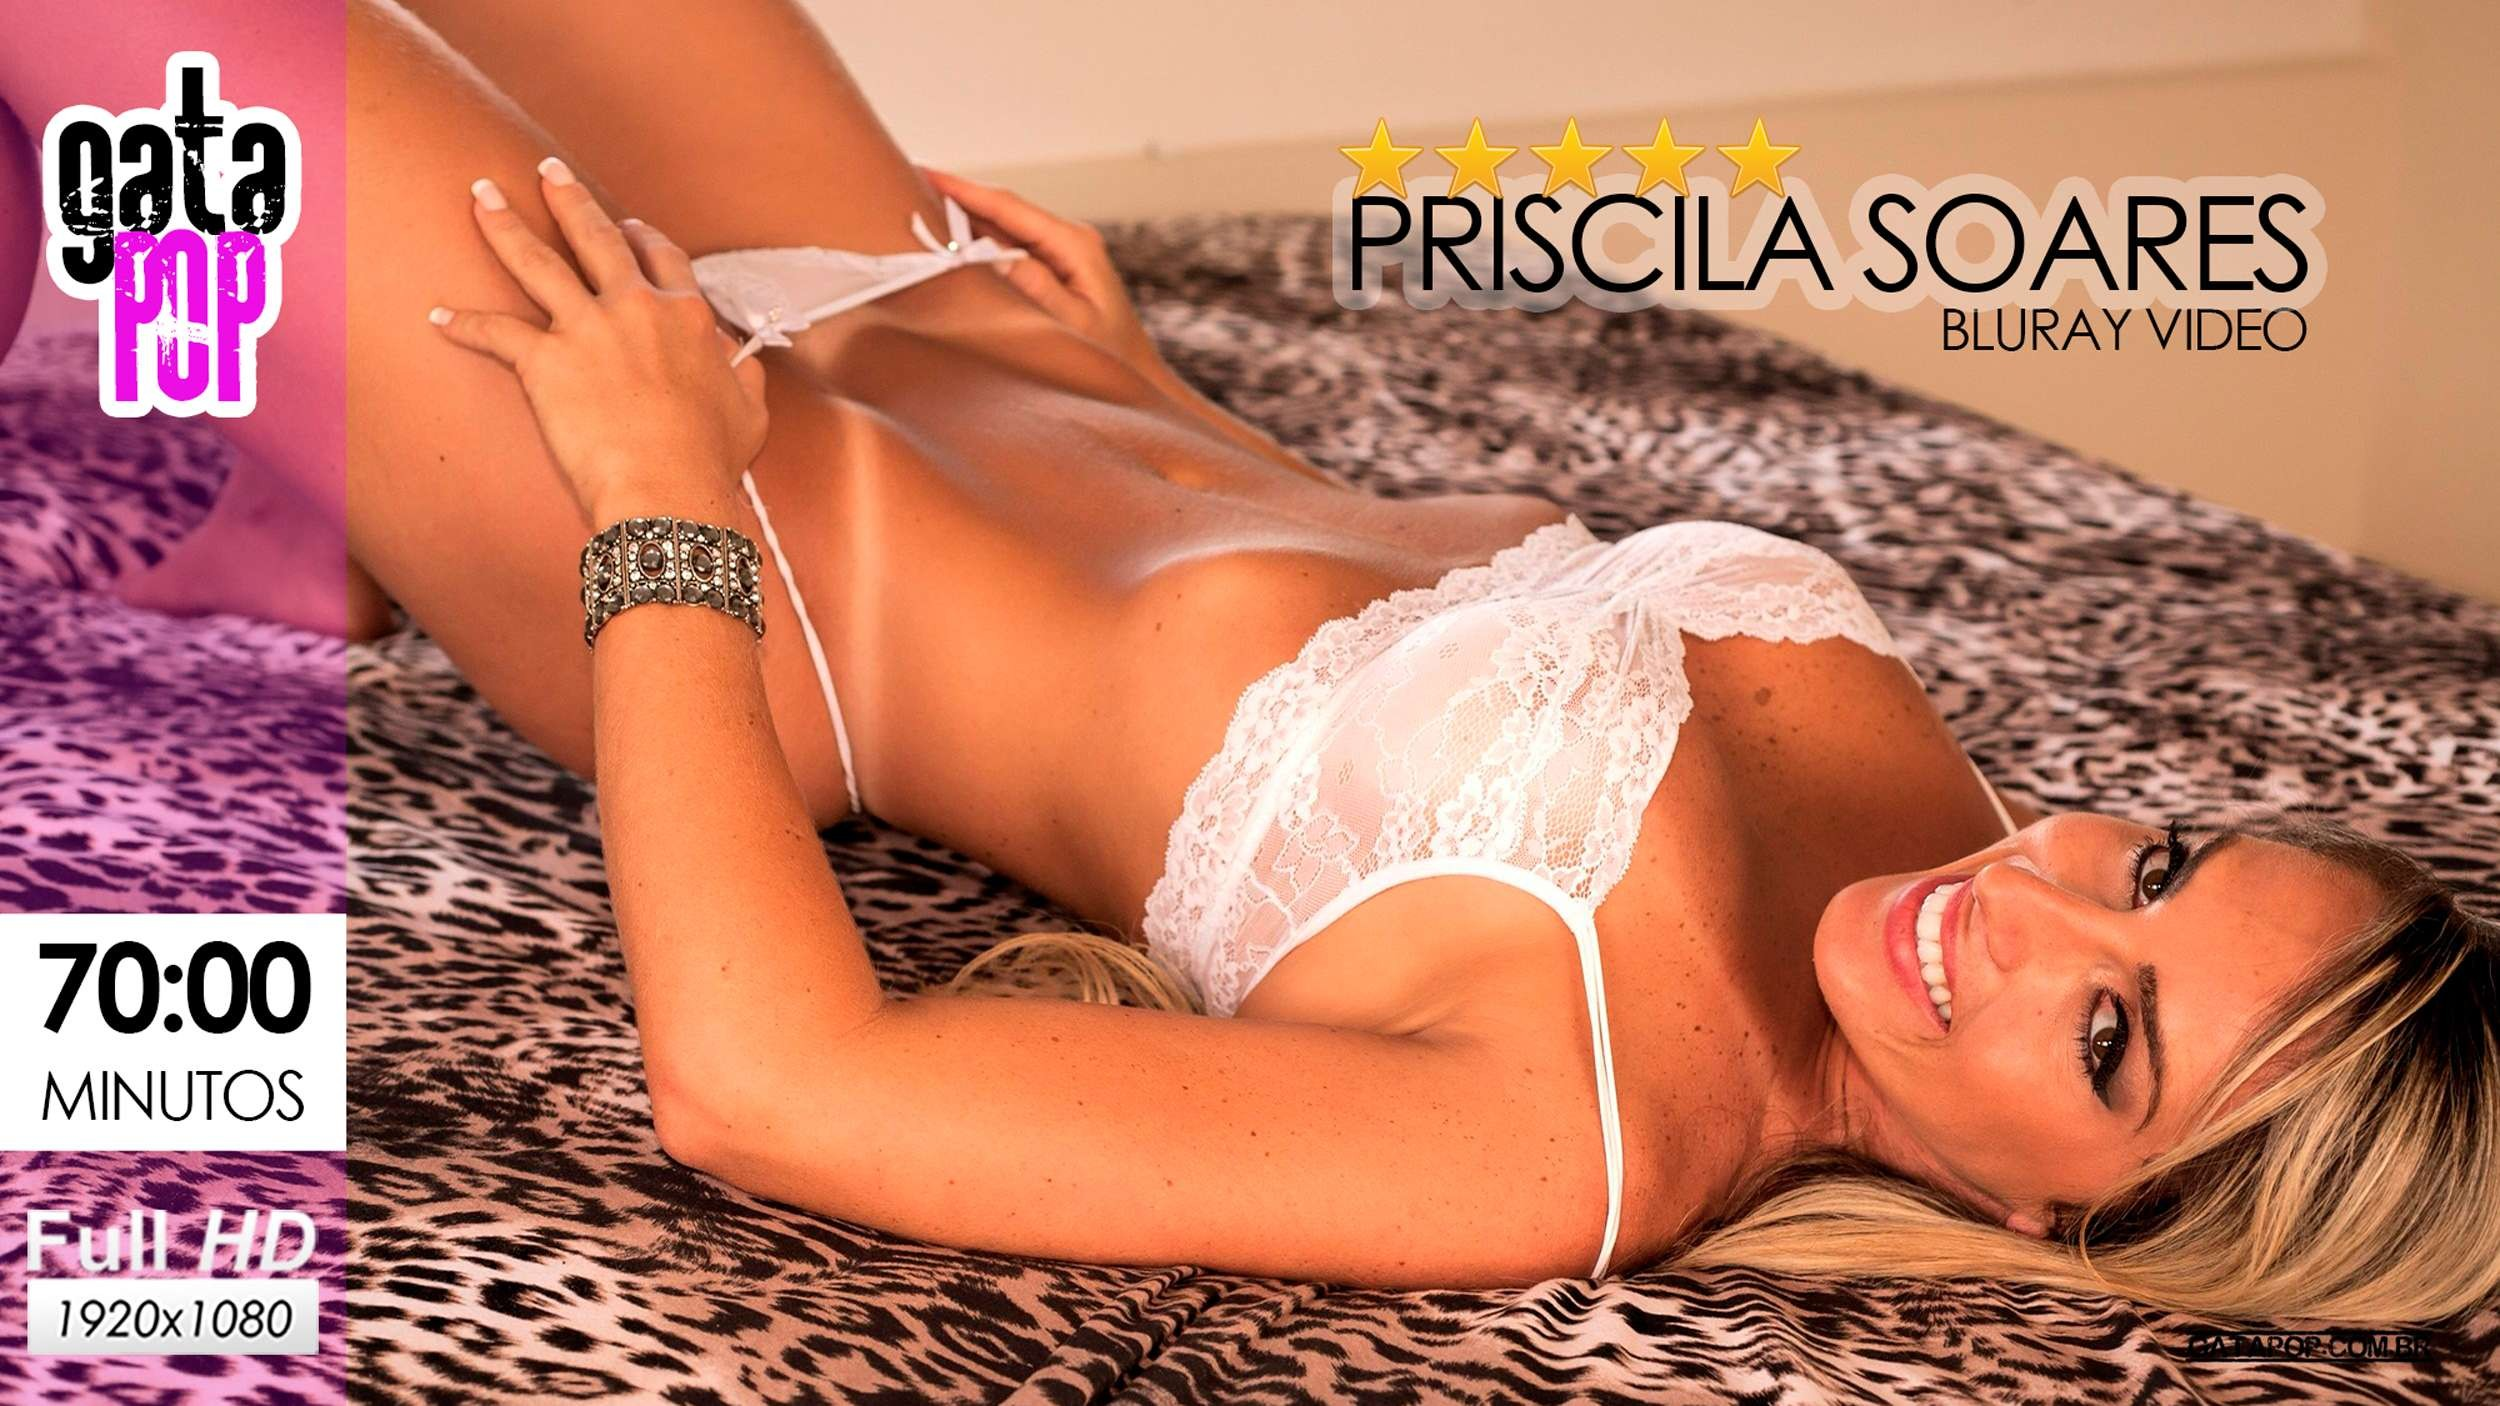 Priscila Soares - Bluray